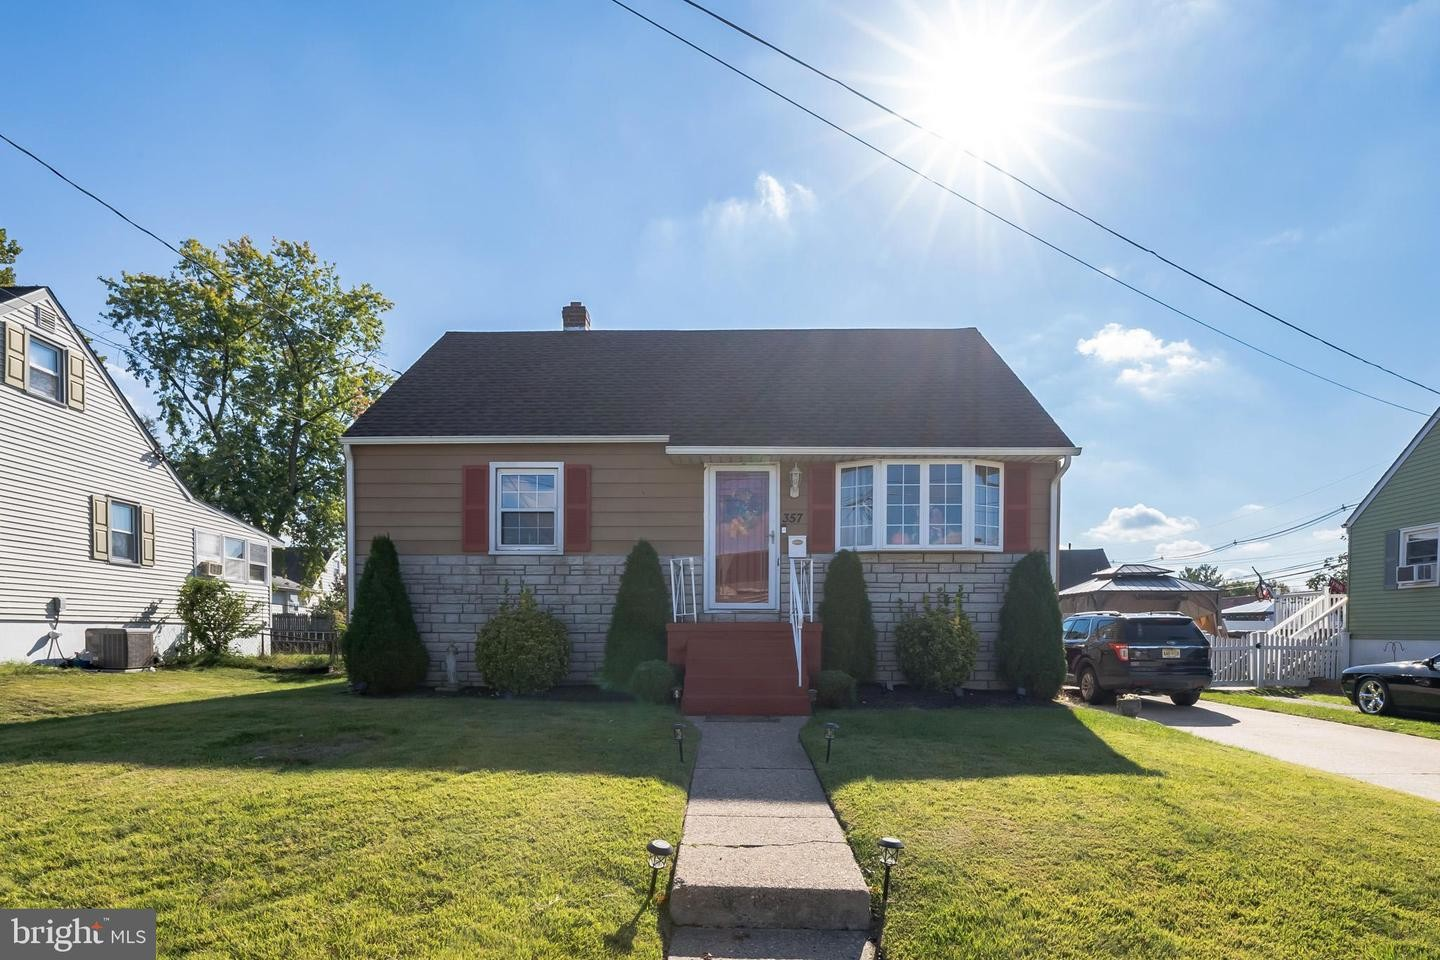 4-Bedroom House In Bellmawr